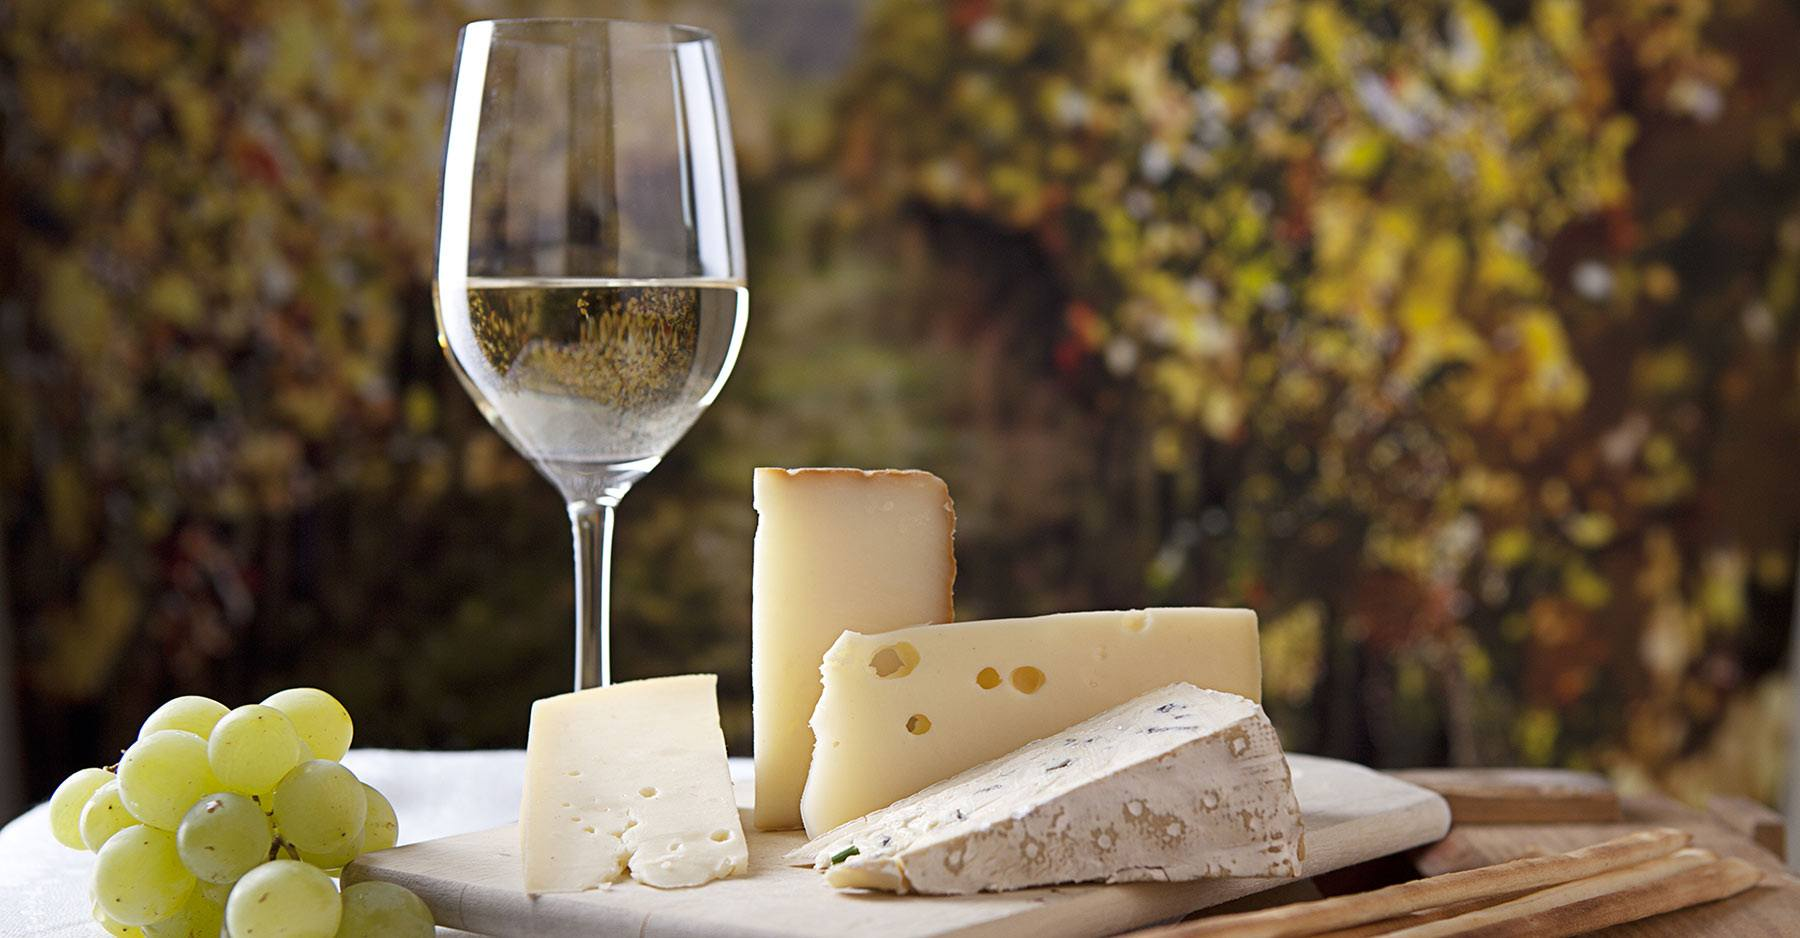 wine and cheese on a table